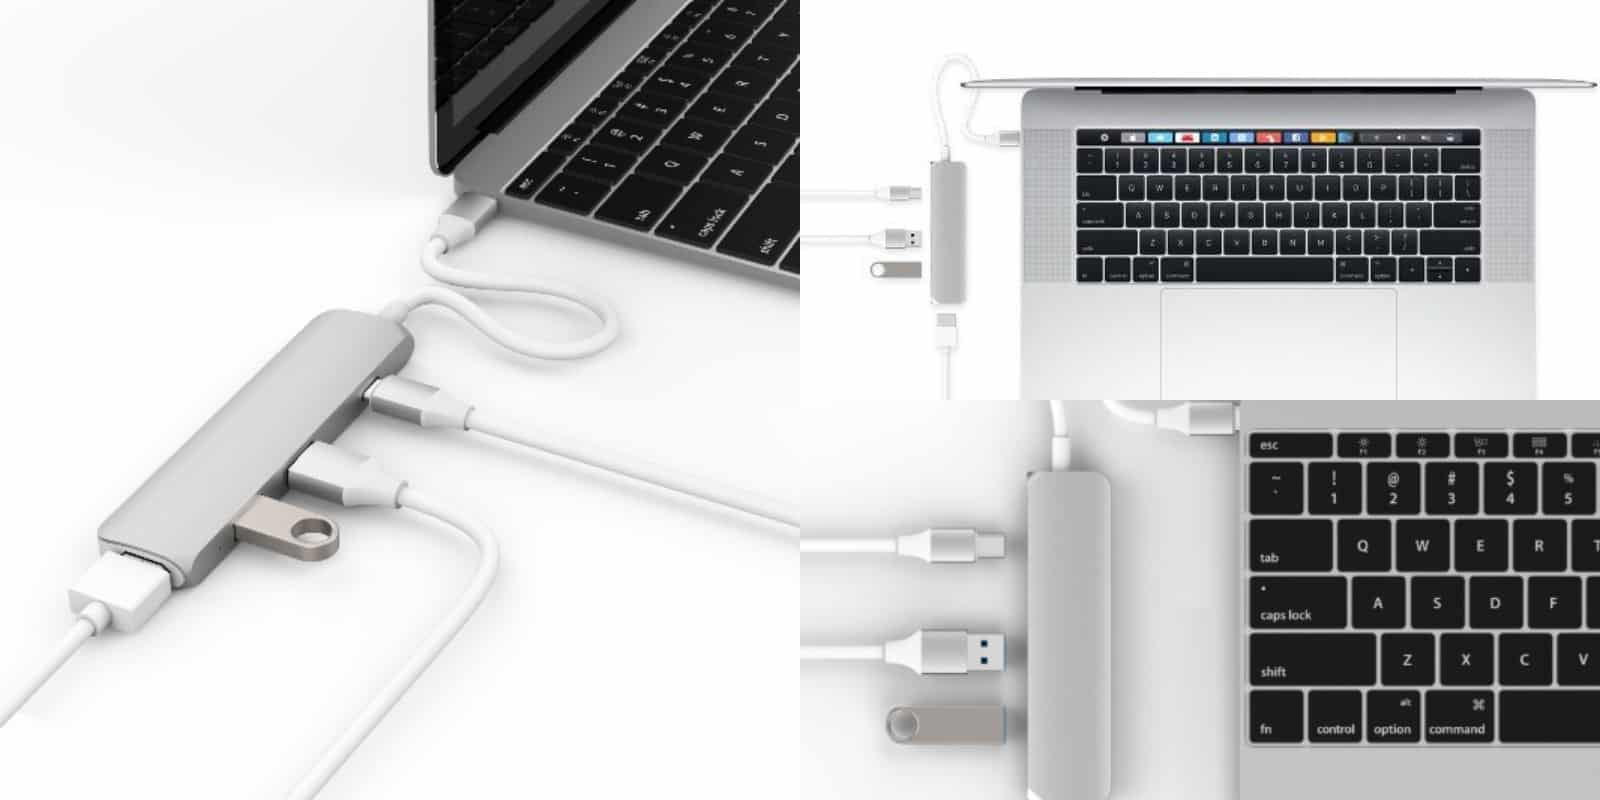 Reclaim your favorite devices by adding two USB 3.0 connections, HDMI, and more to your MacBook.